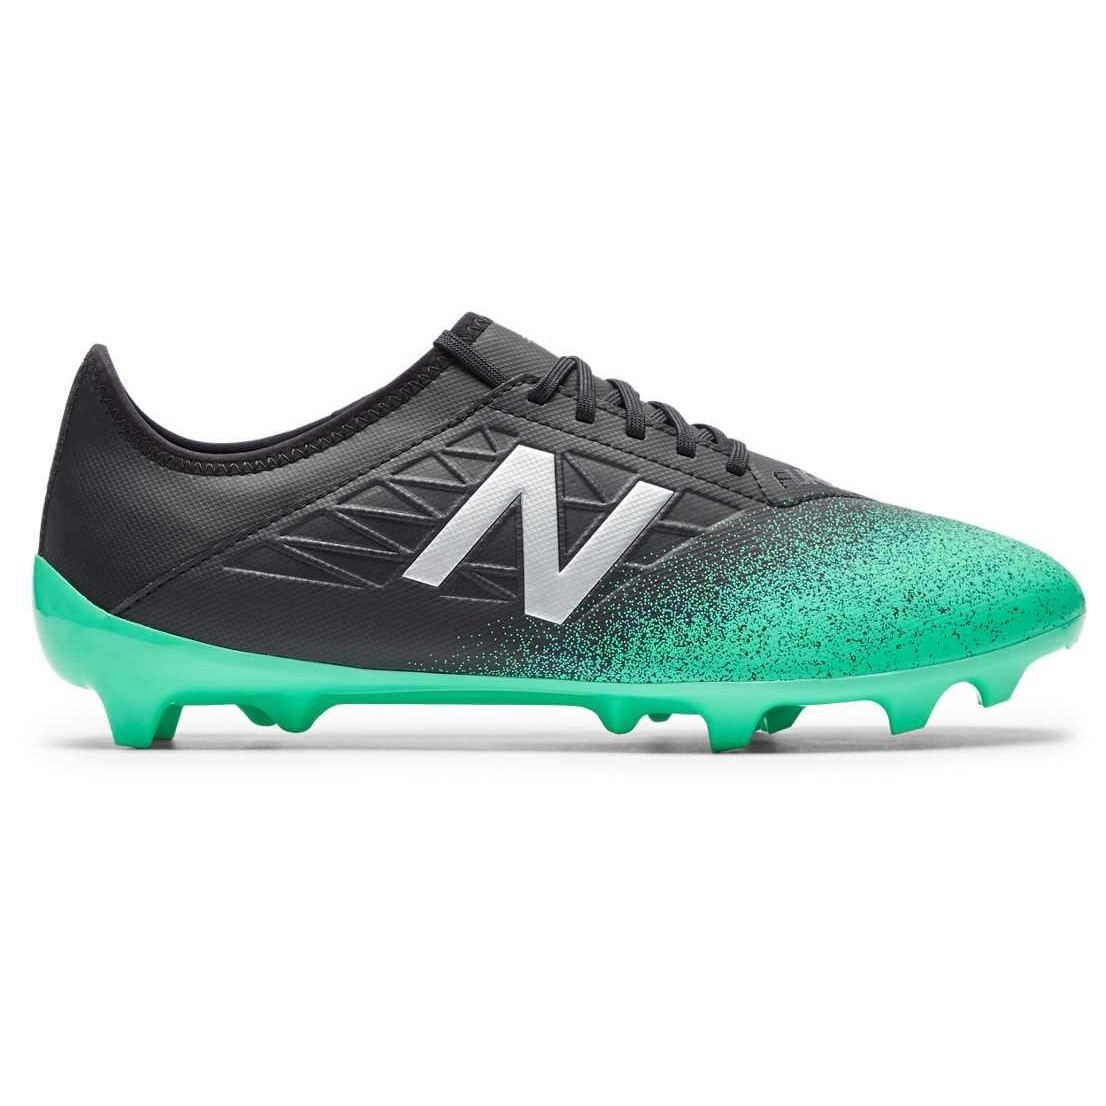 f0a93a0ea New Balance Furon Dispatch v5 - Mens Football Boots - Neon  Emerald Black Silver